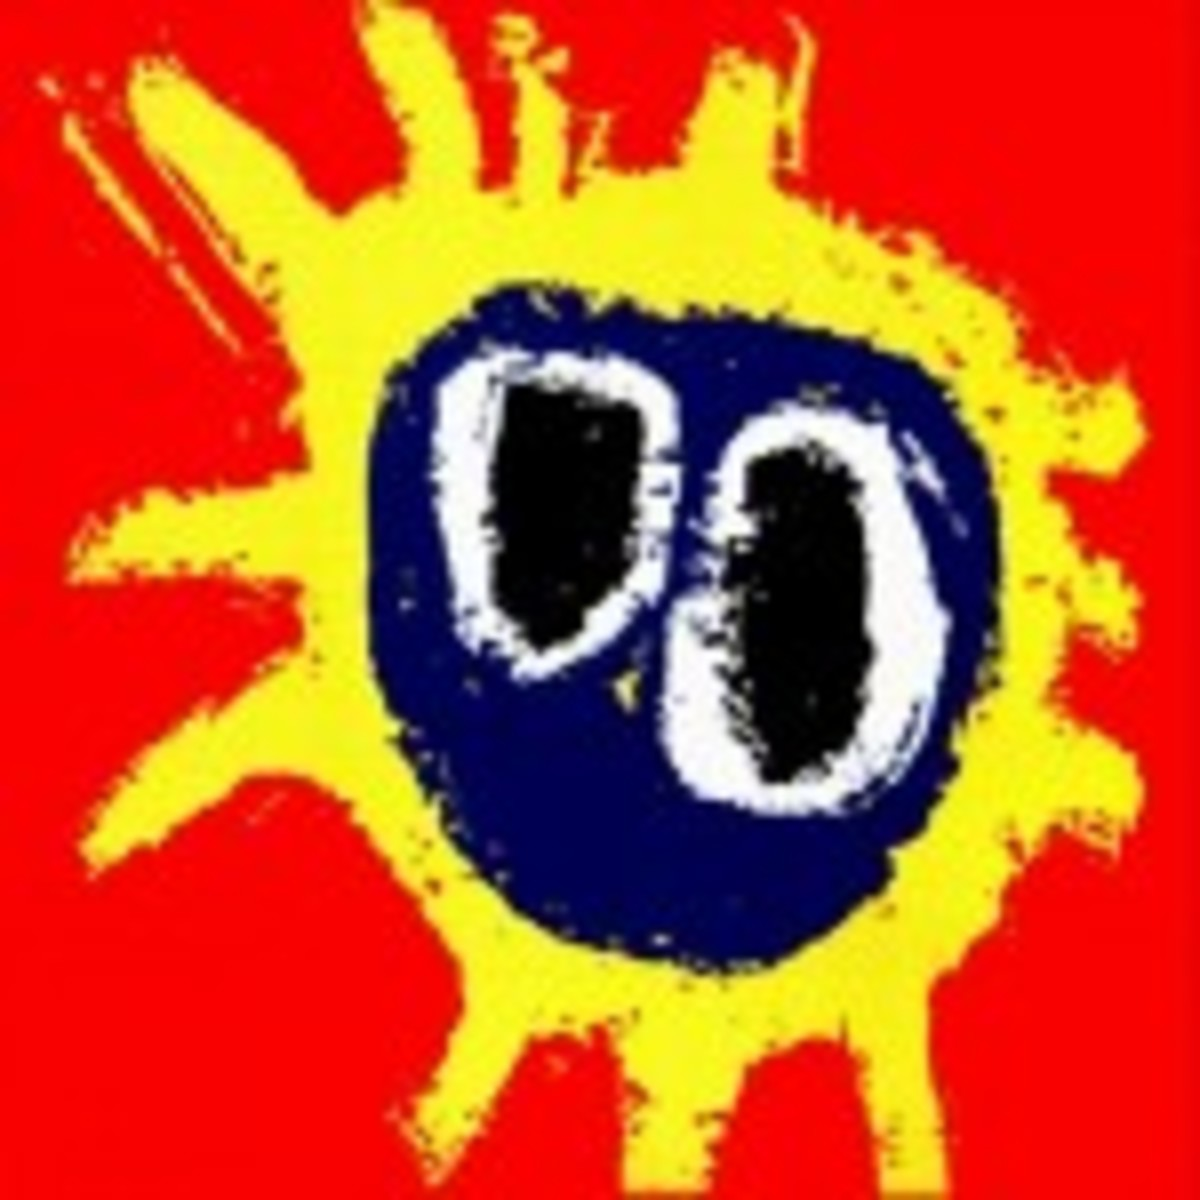 primal-scream-screamadelica-front-cover